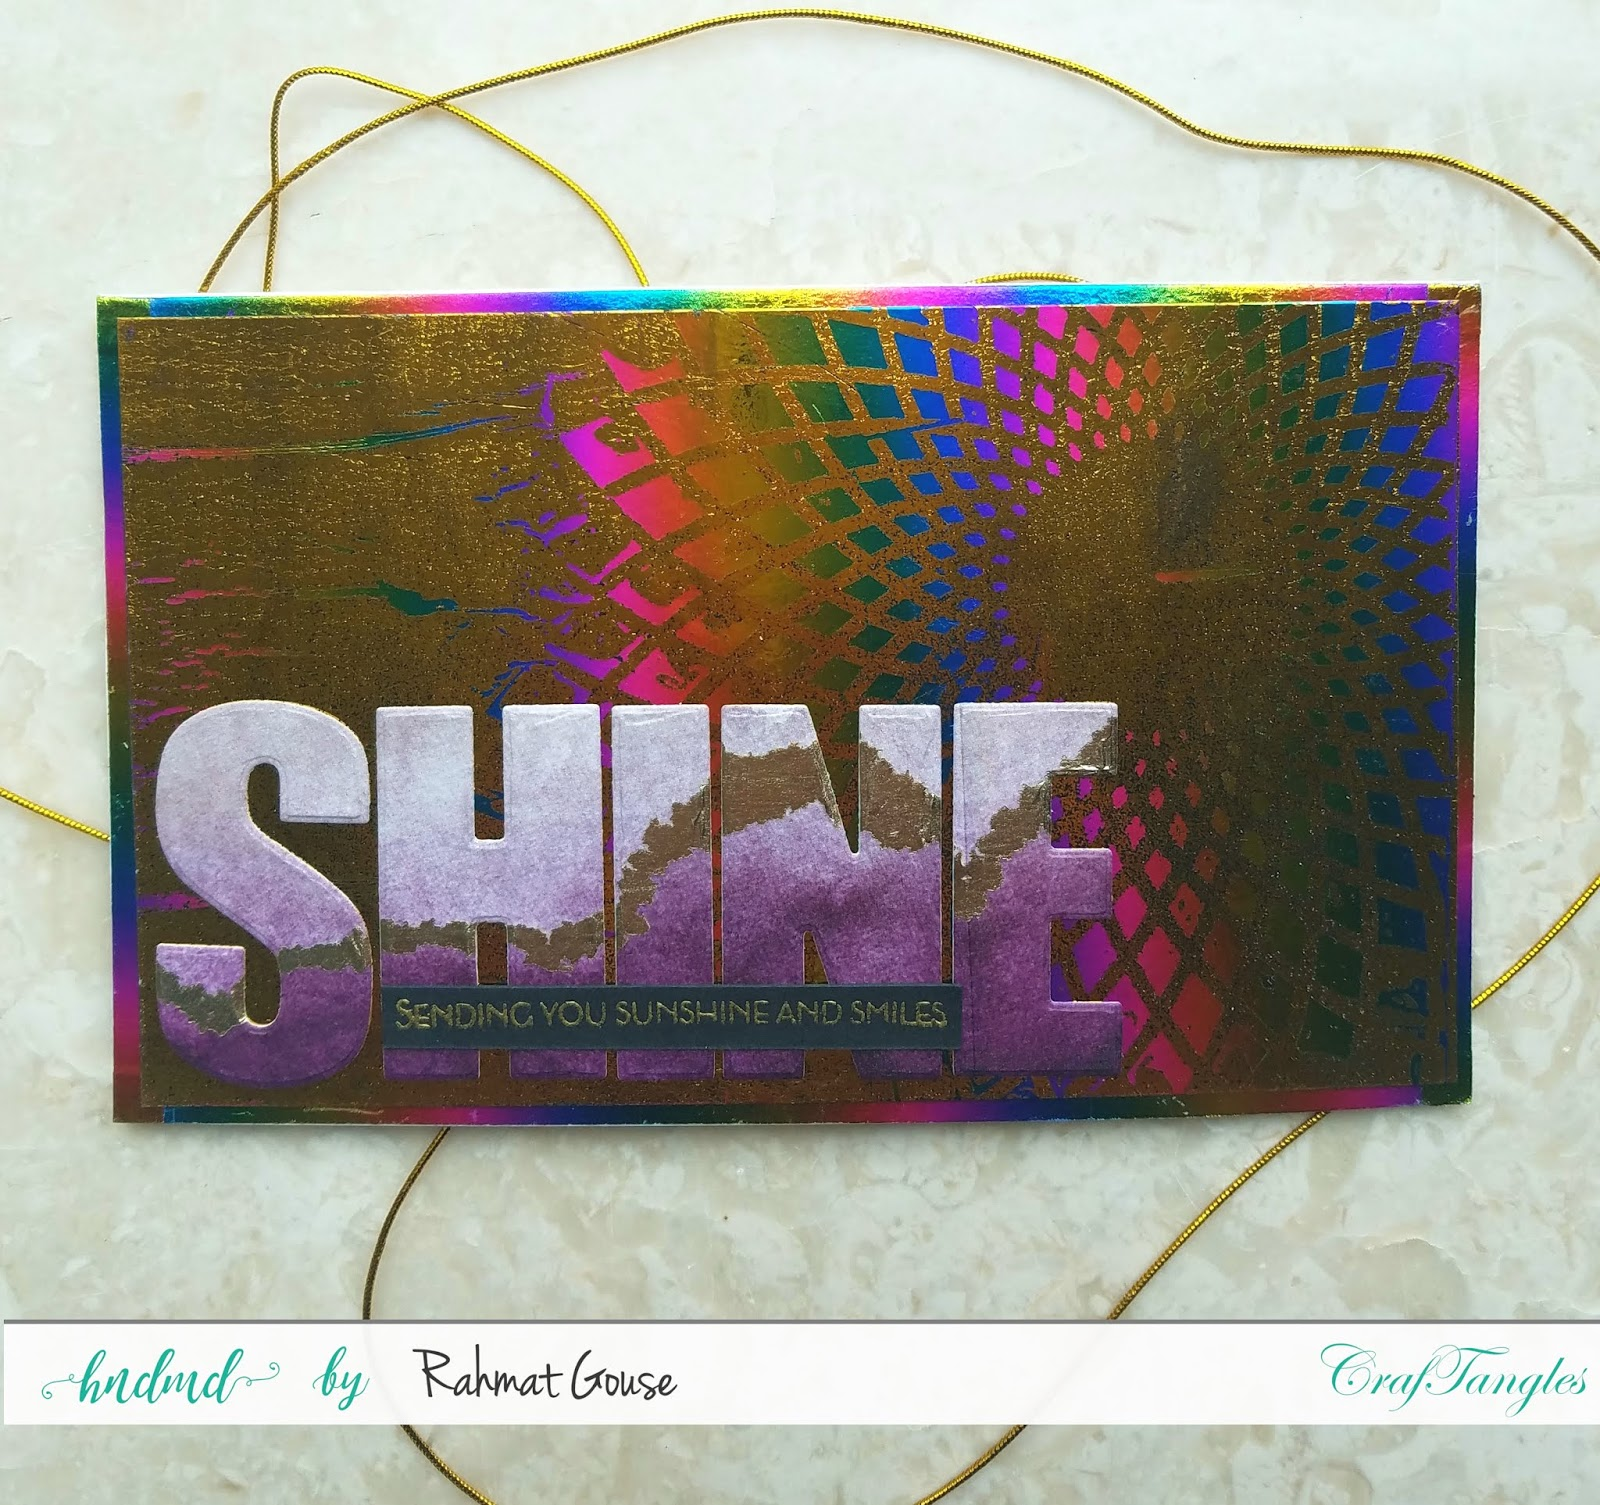 Double foiling using the negatives of stencils and foils - Rahmat 5